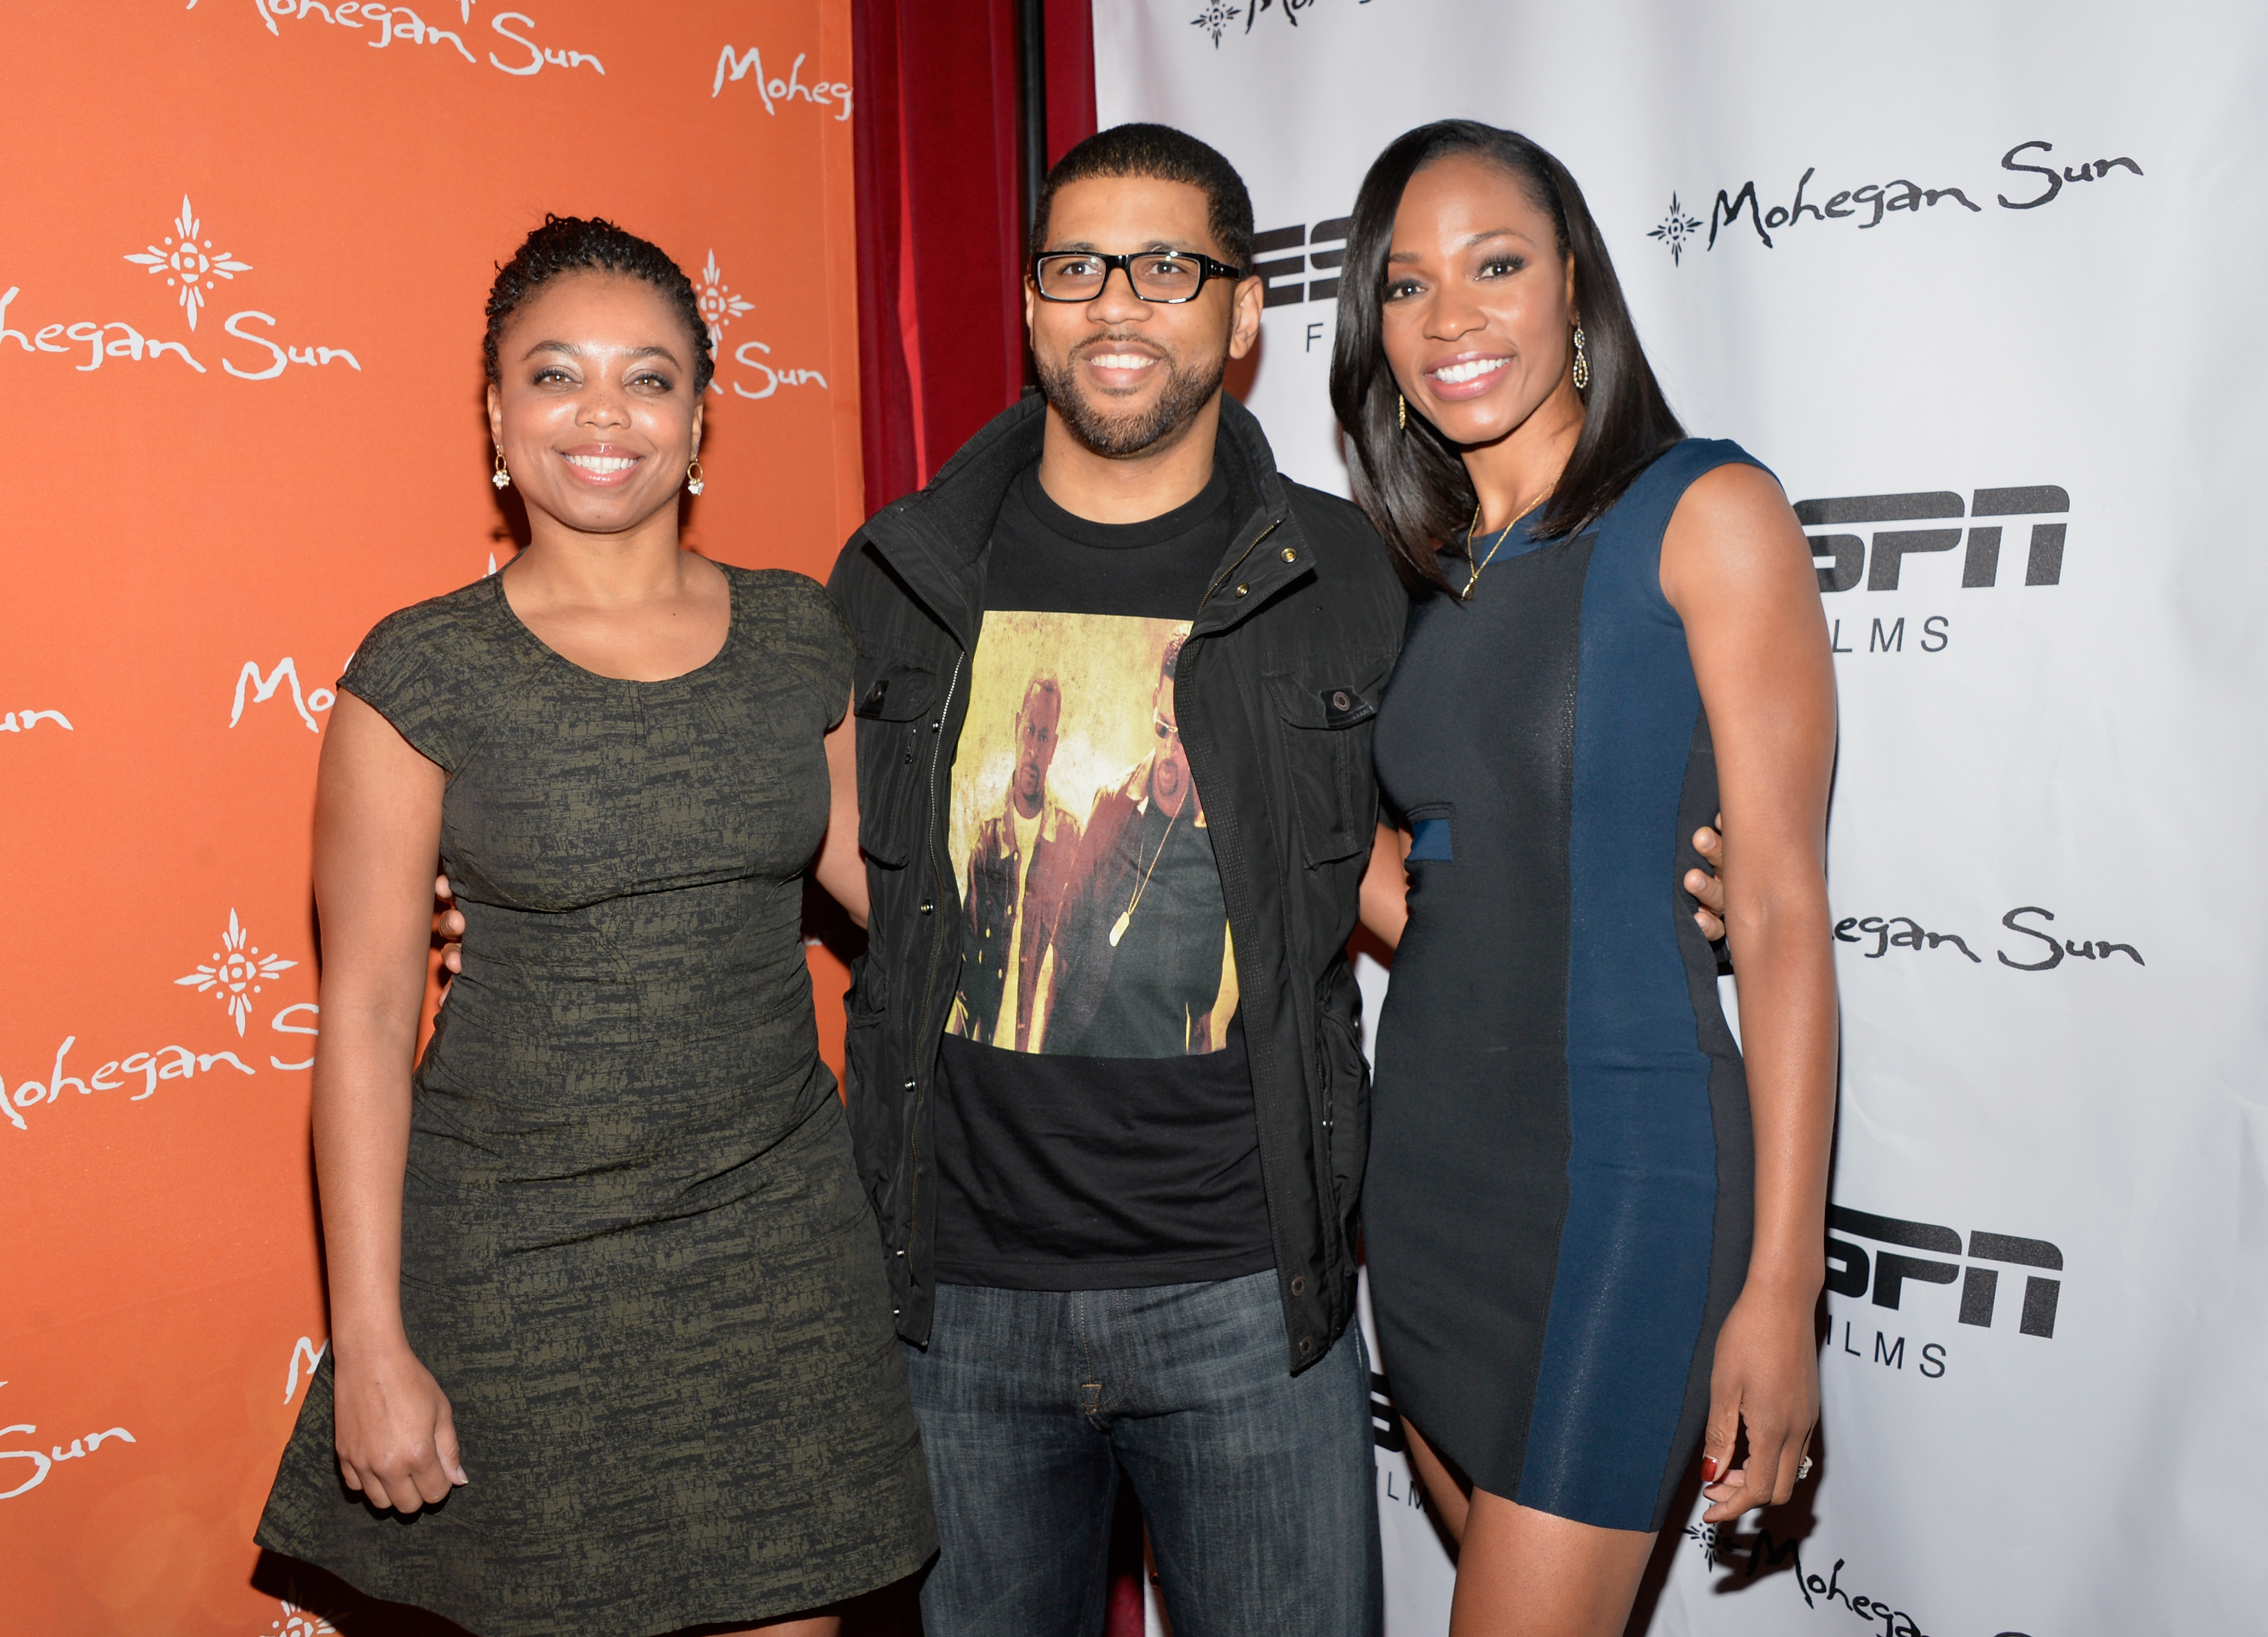 Michael Smith Espn Wife Jemele Hill on the Fig...